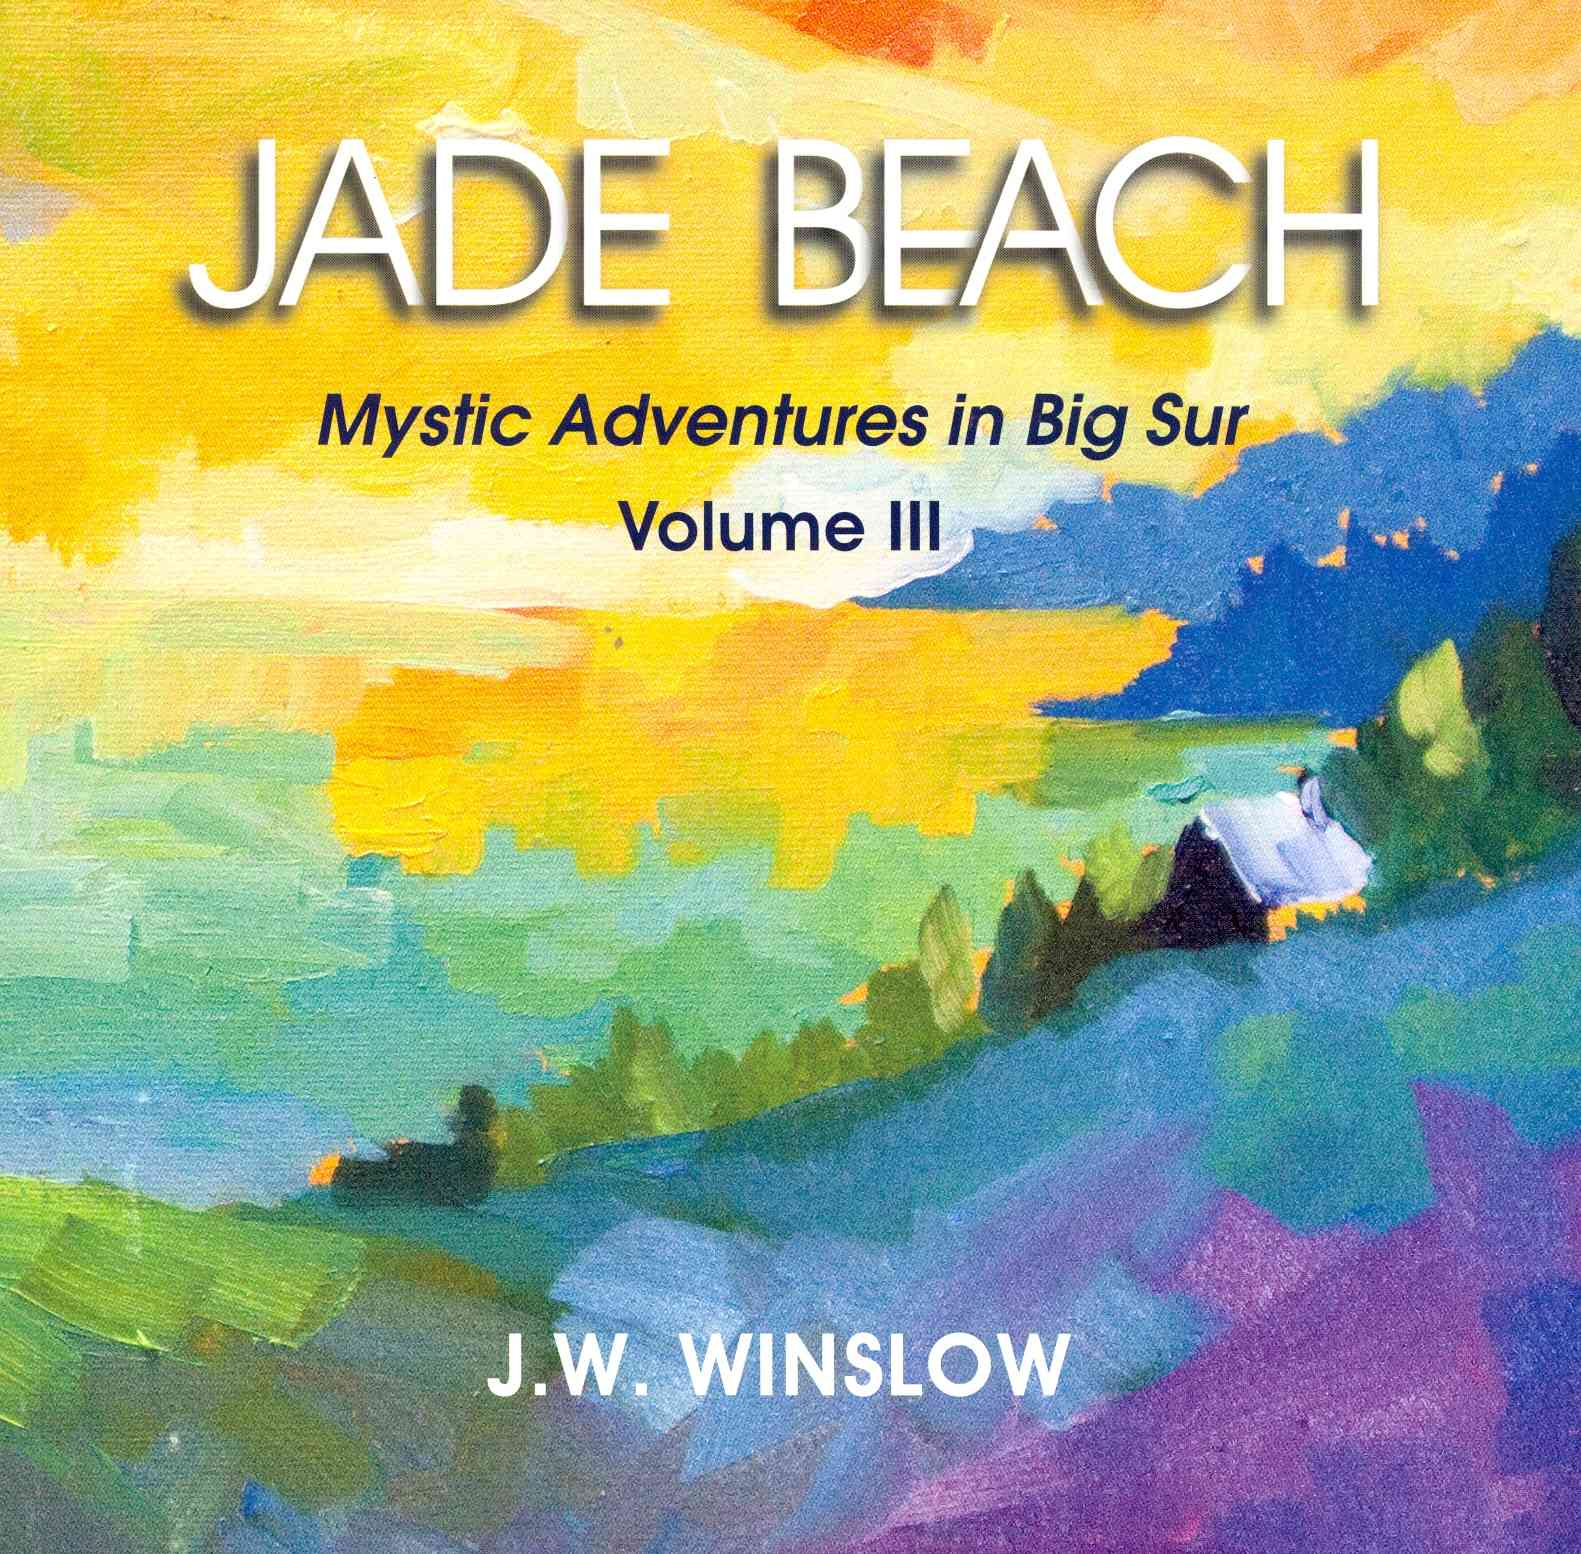 Jade Beach By Winslow, J. W.